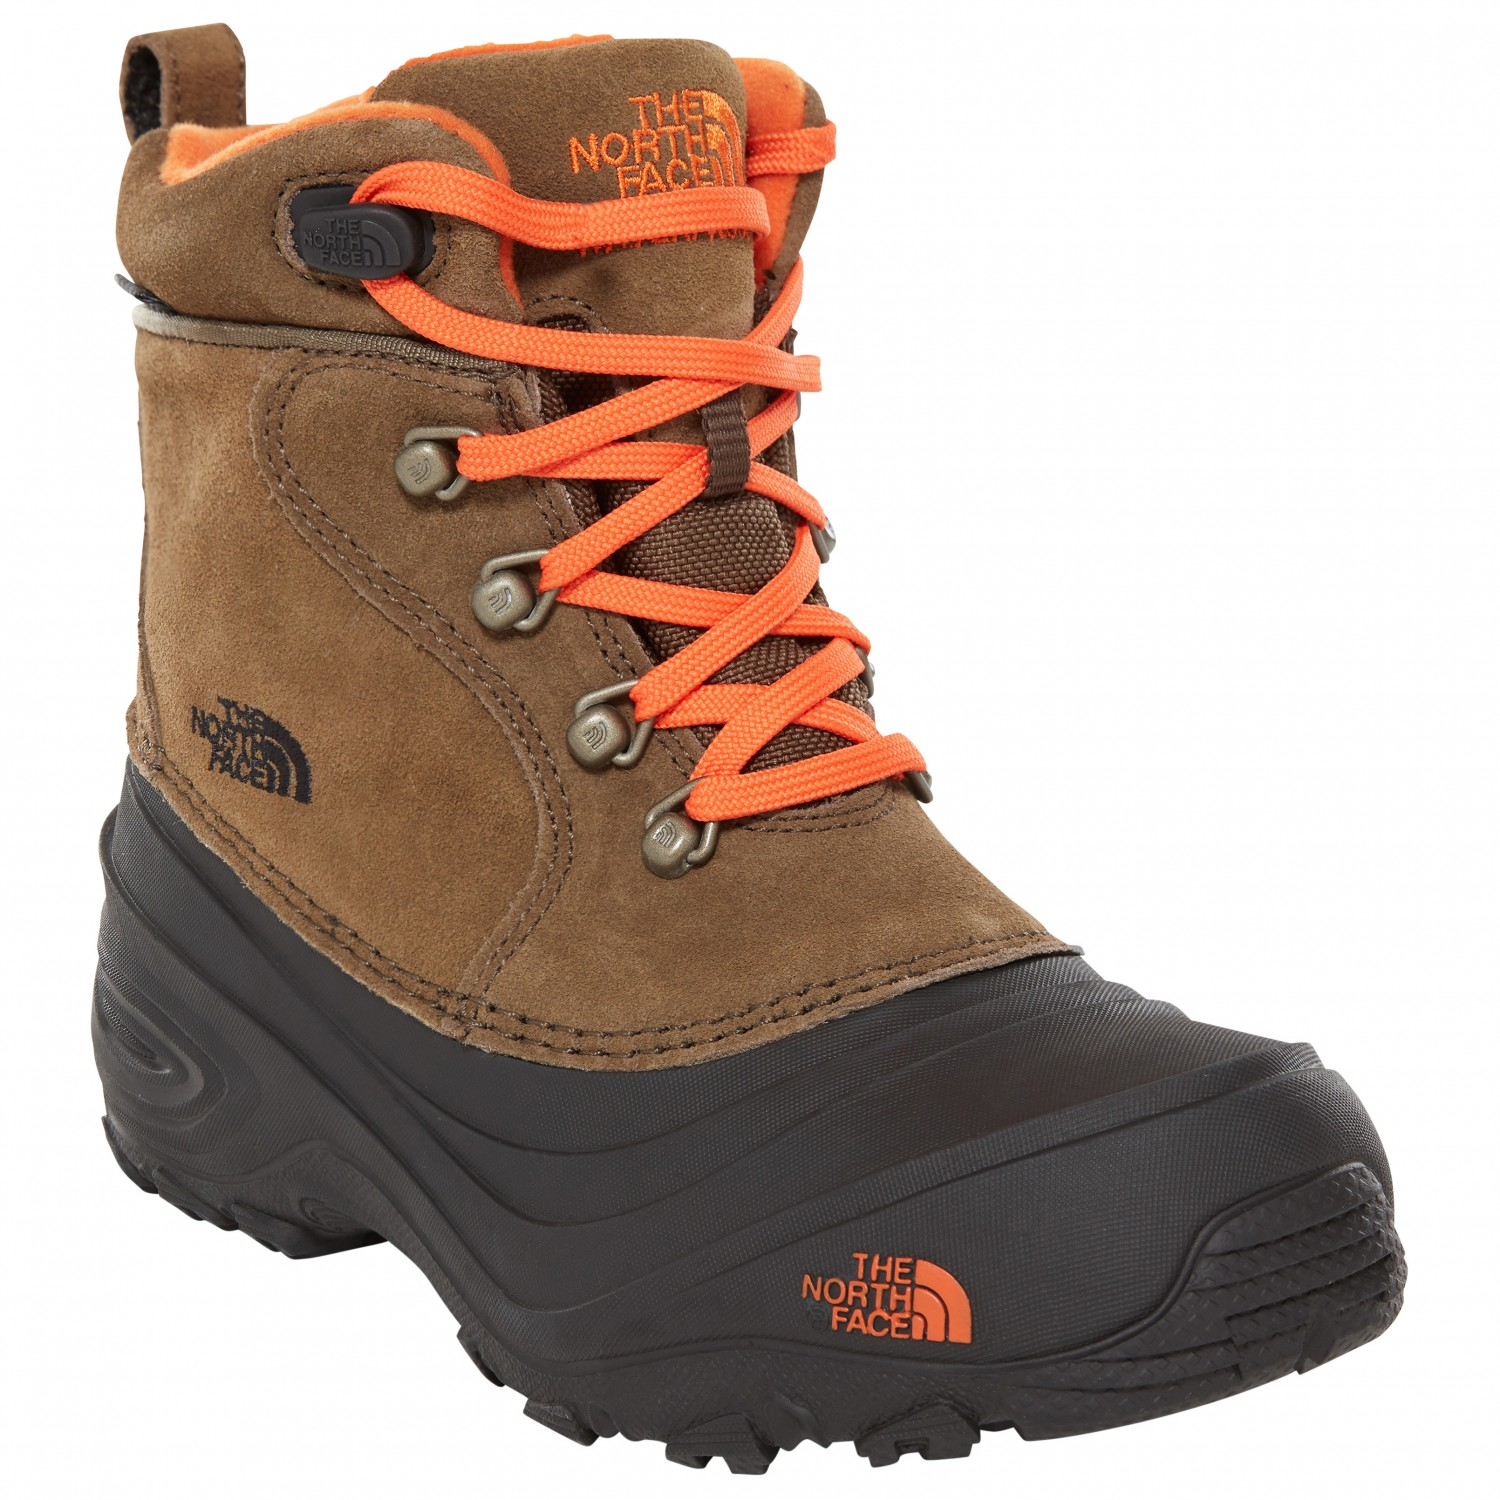 0378dc79a The North Face - Youth Chilkat Lace II - Winter boots - TNF Black / Zinc  Grey | 10K (US)